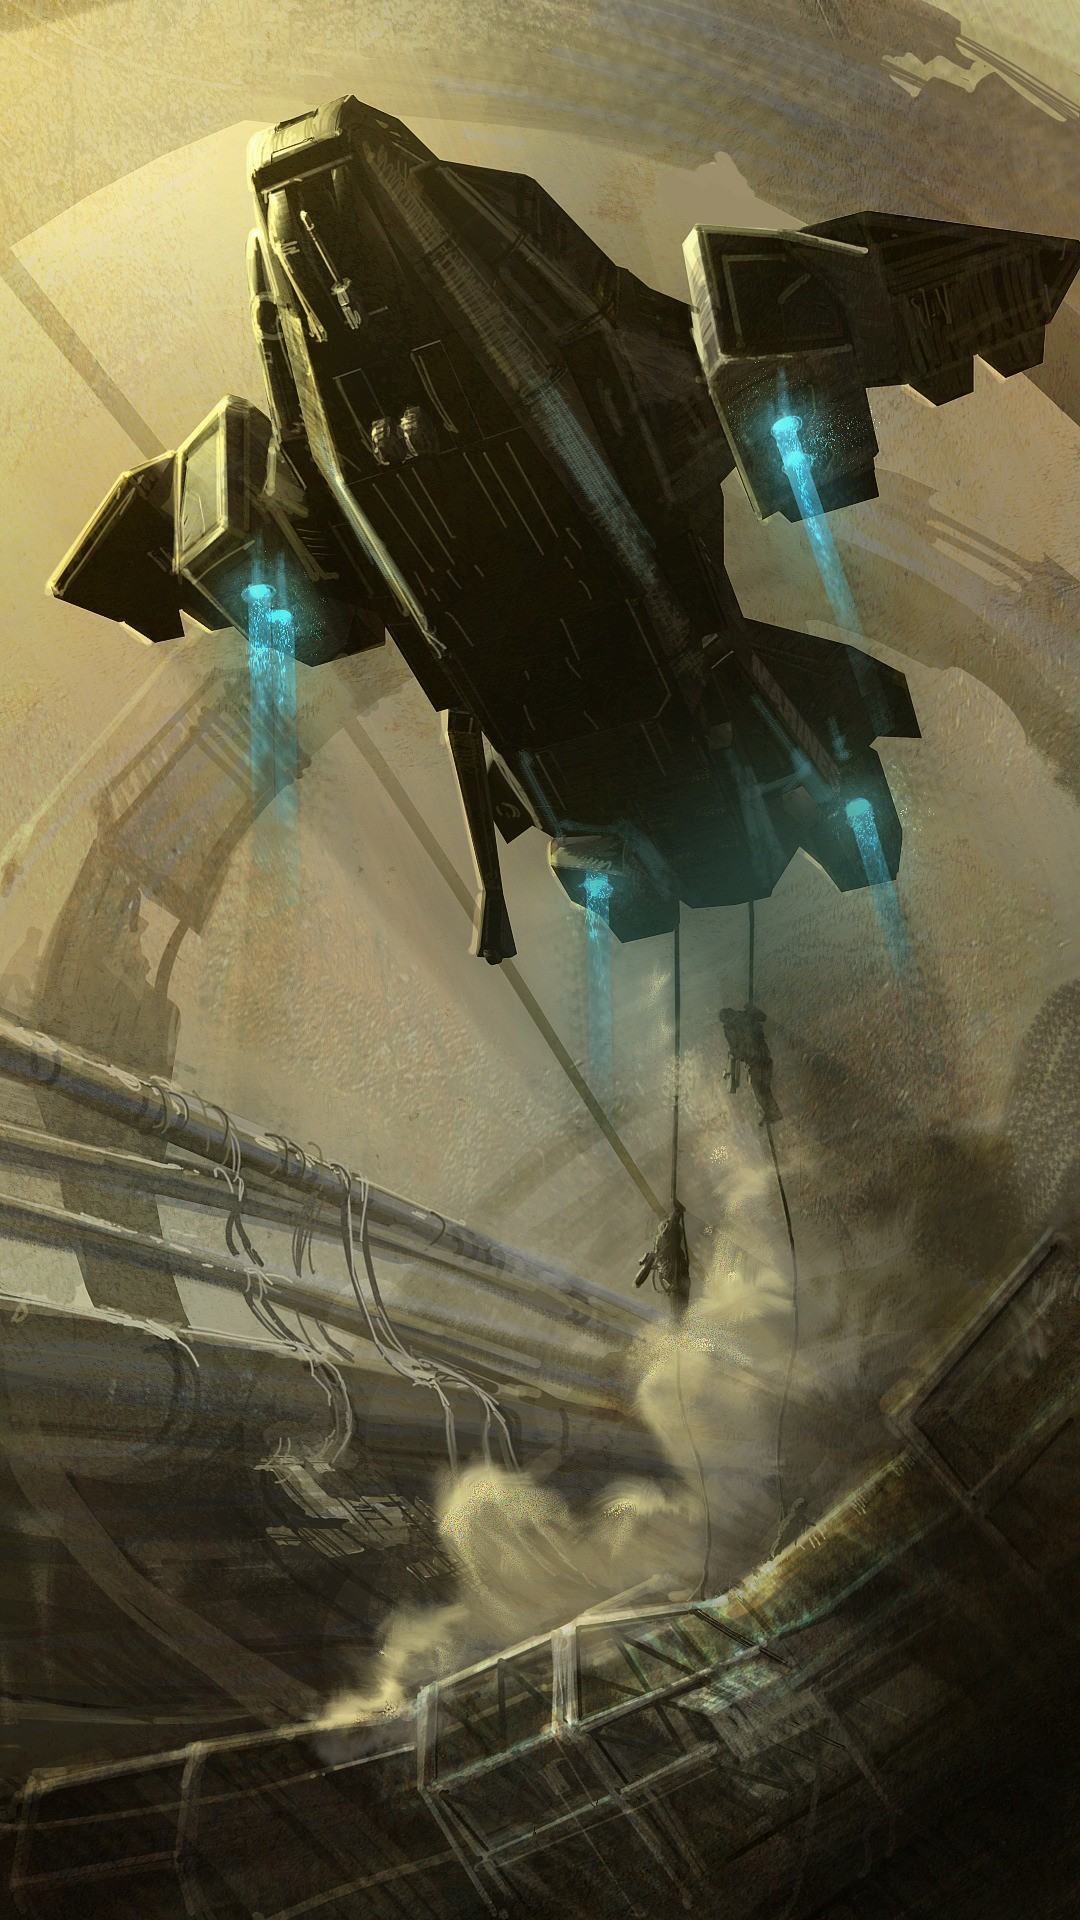 Artwork-liftoff-space-elevator-pelican-sandstorms-unsc-1080x1920-space-pelican-unsc-via-www-al-wallpaper-wp3802546